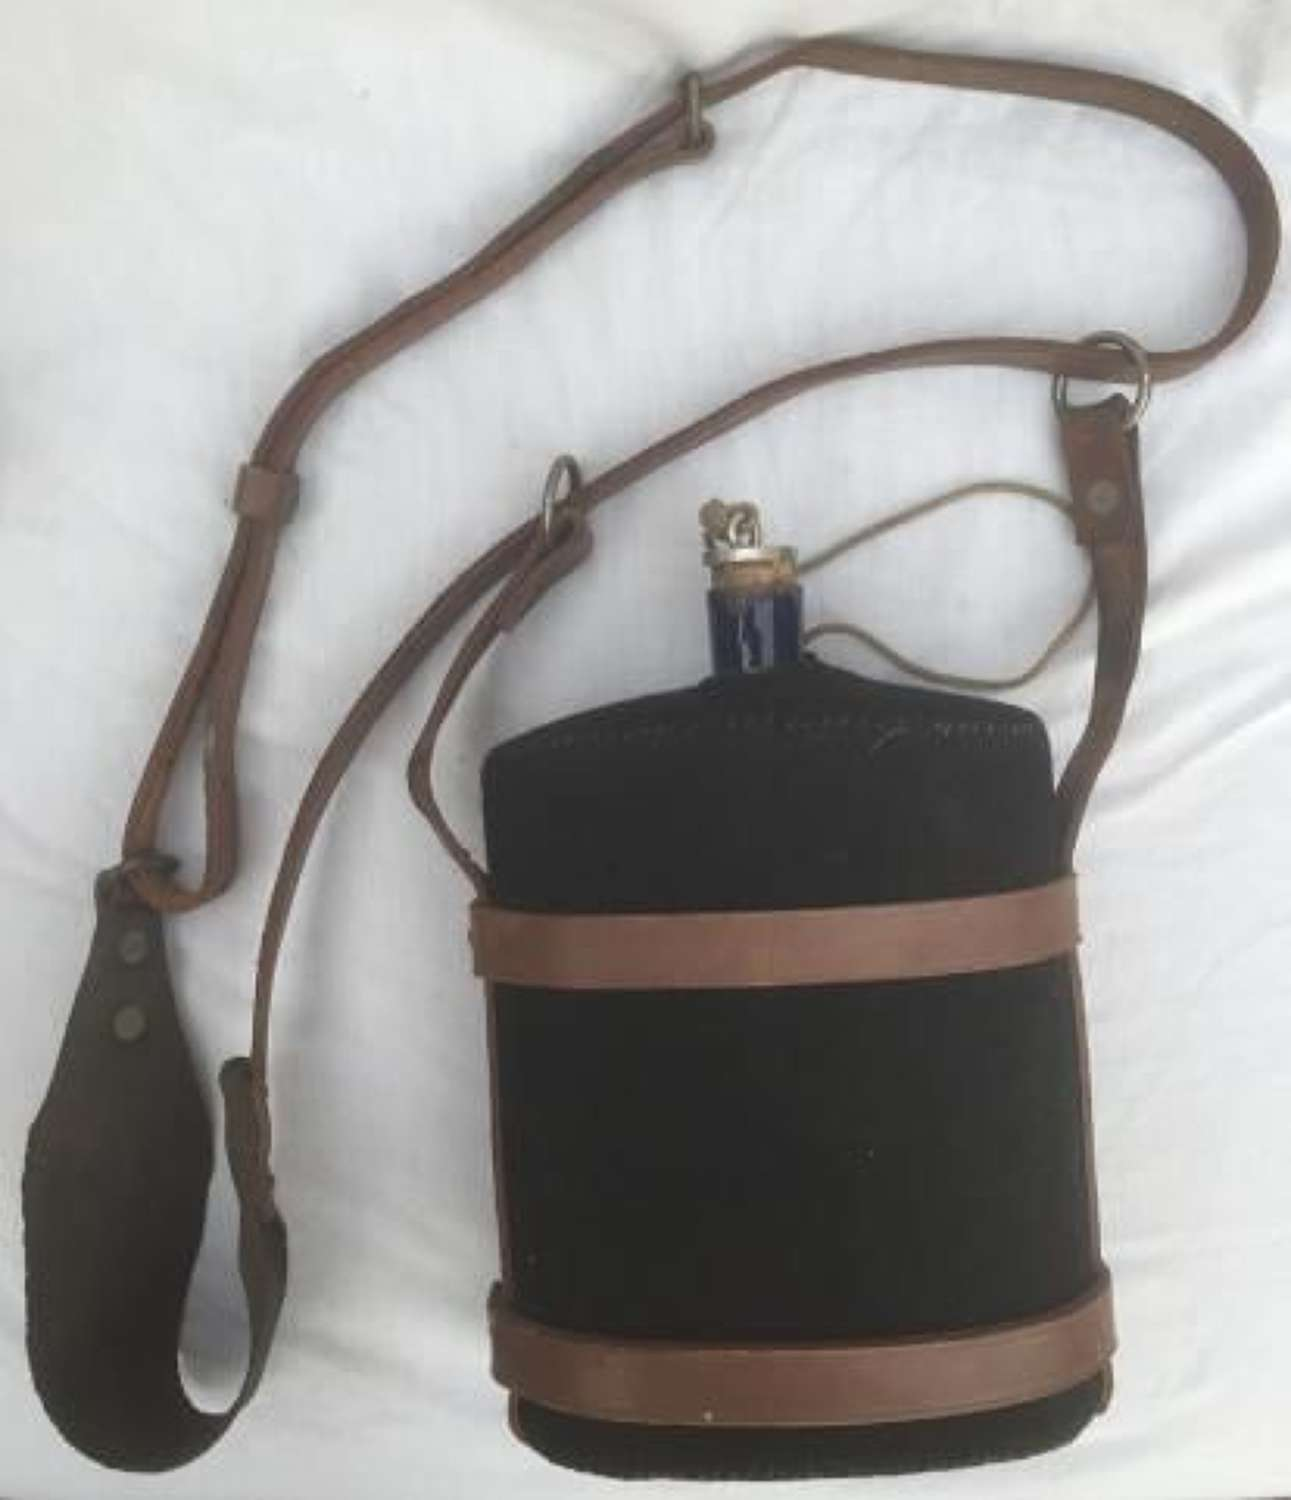 Great War 1903 Pattern Water Bottle And Cradle